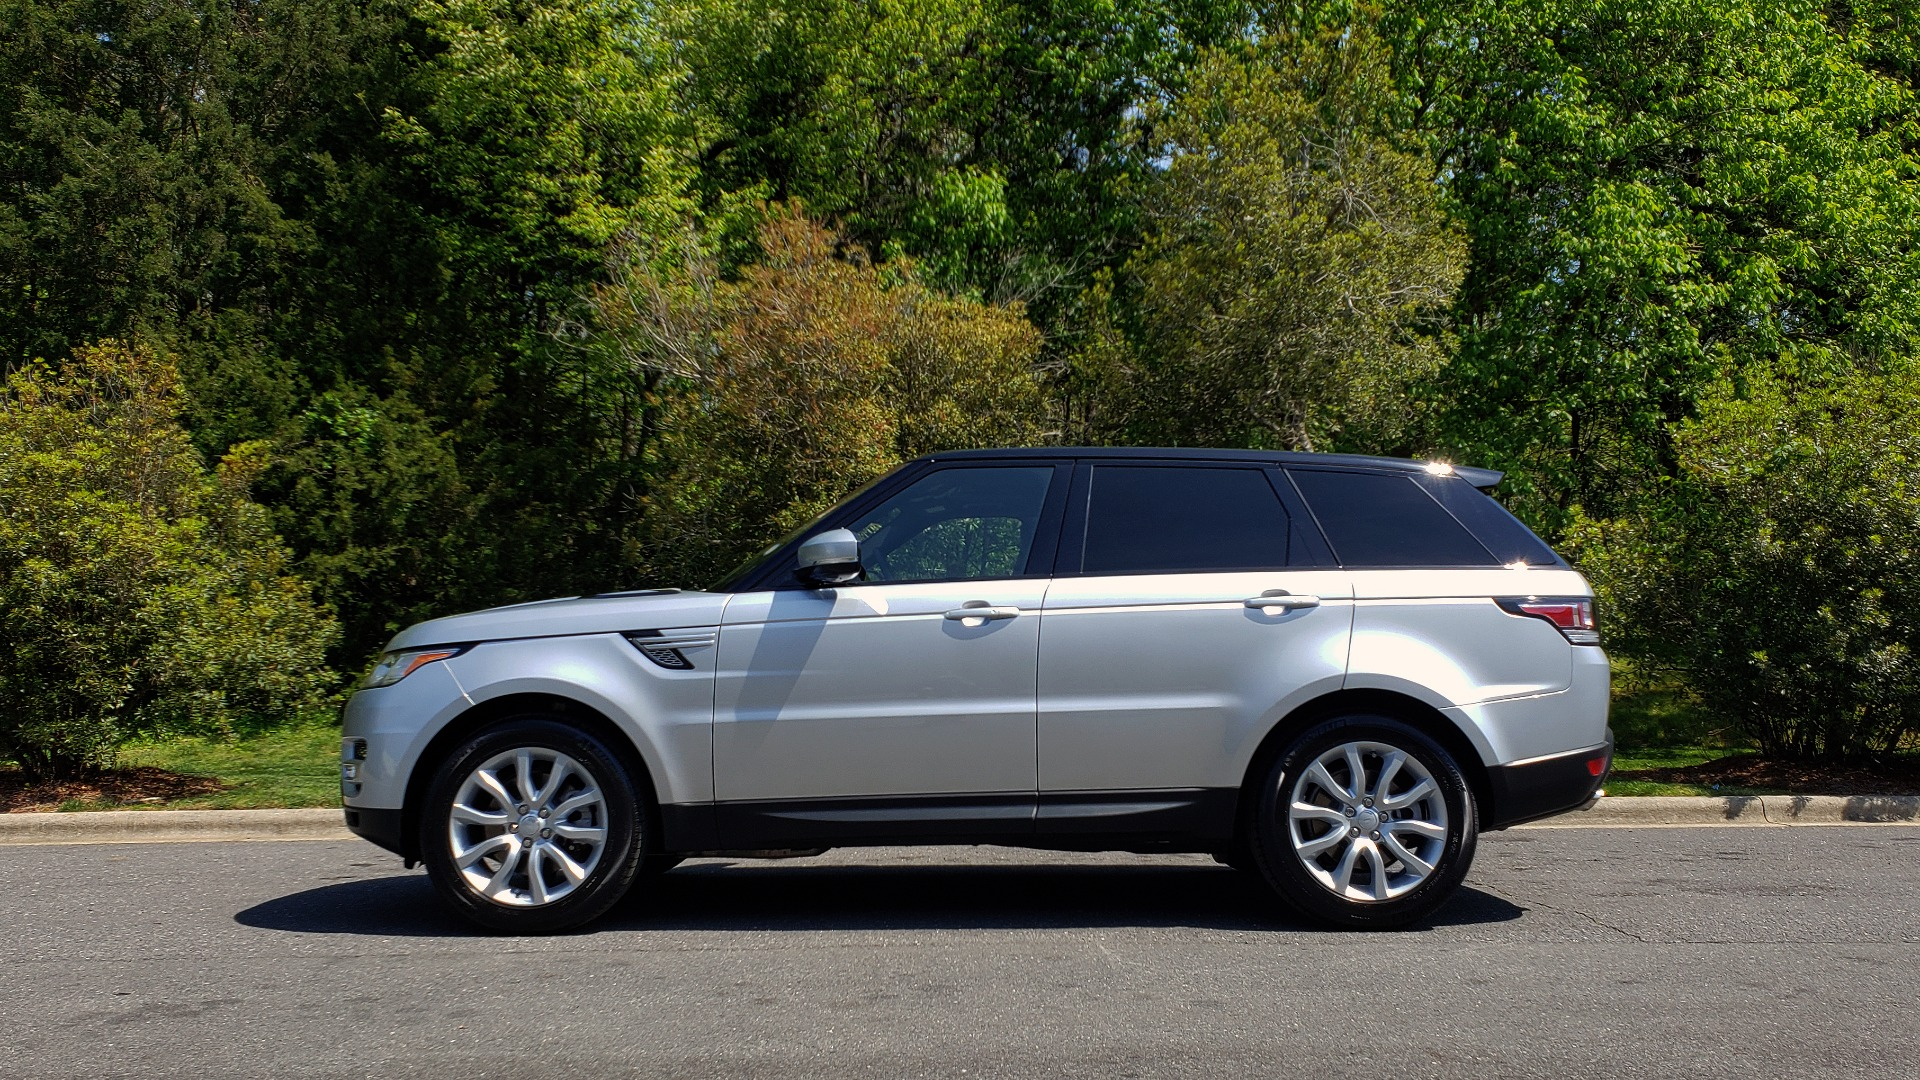 Used 2017 Land Rover RANGE ROVER SPORT HSE / SC V6 / 4X4 / NAV / PANO-ROOF / REARVIEW for sale Sold at Formula Imports in Charlotte NC 28227 2